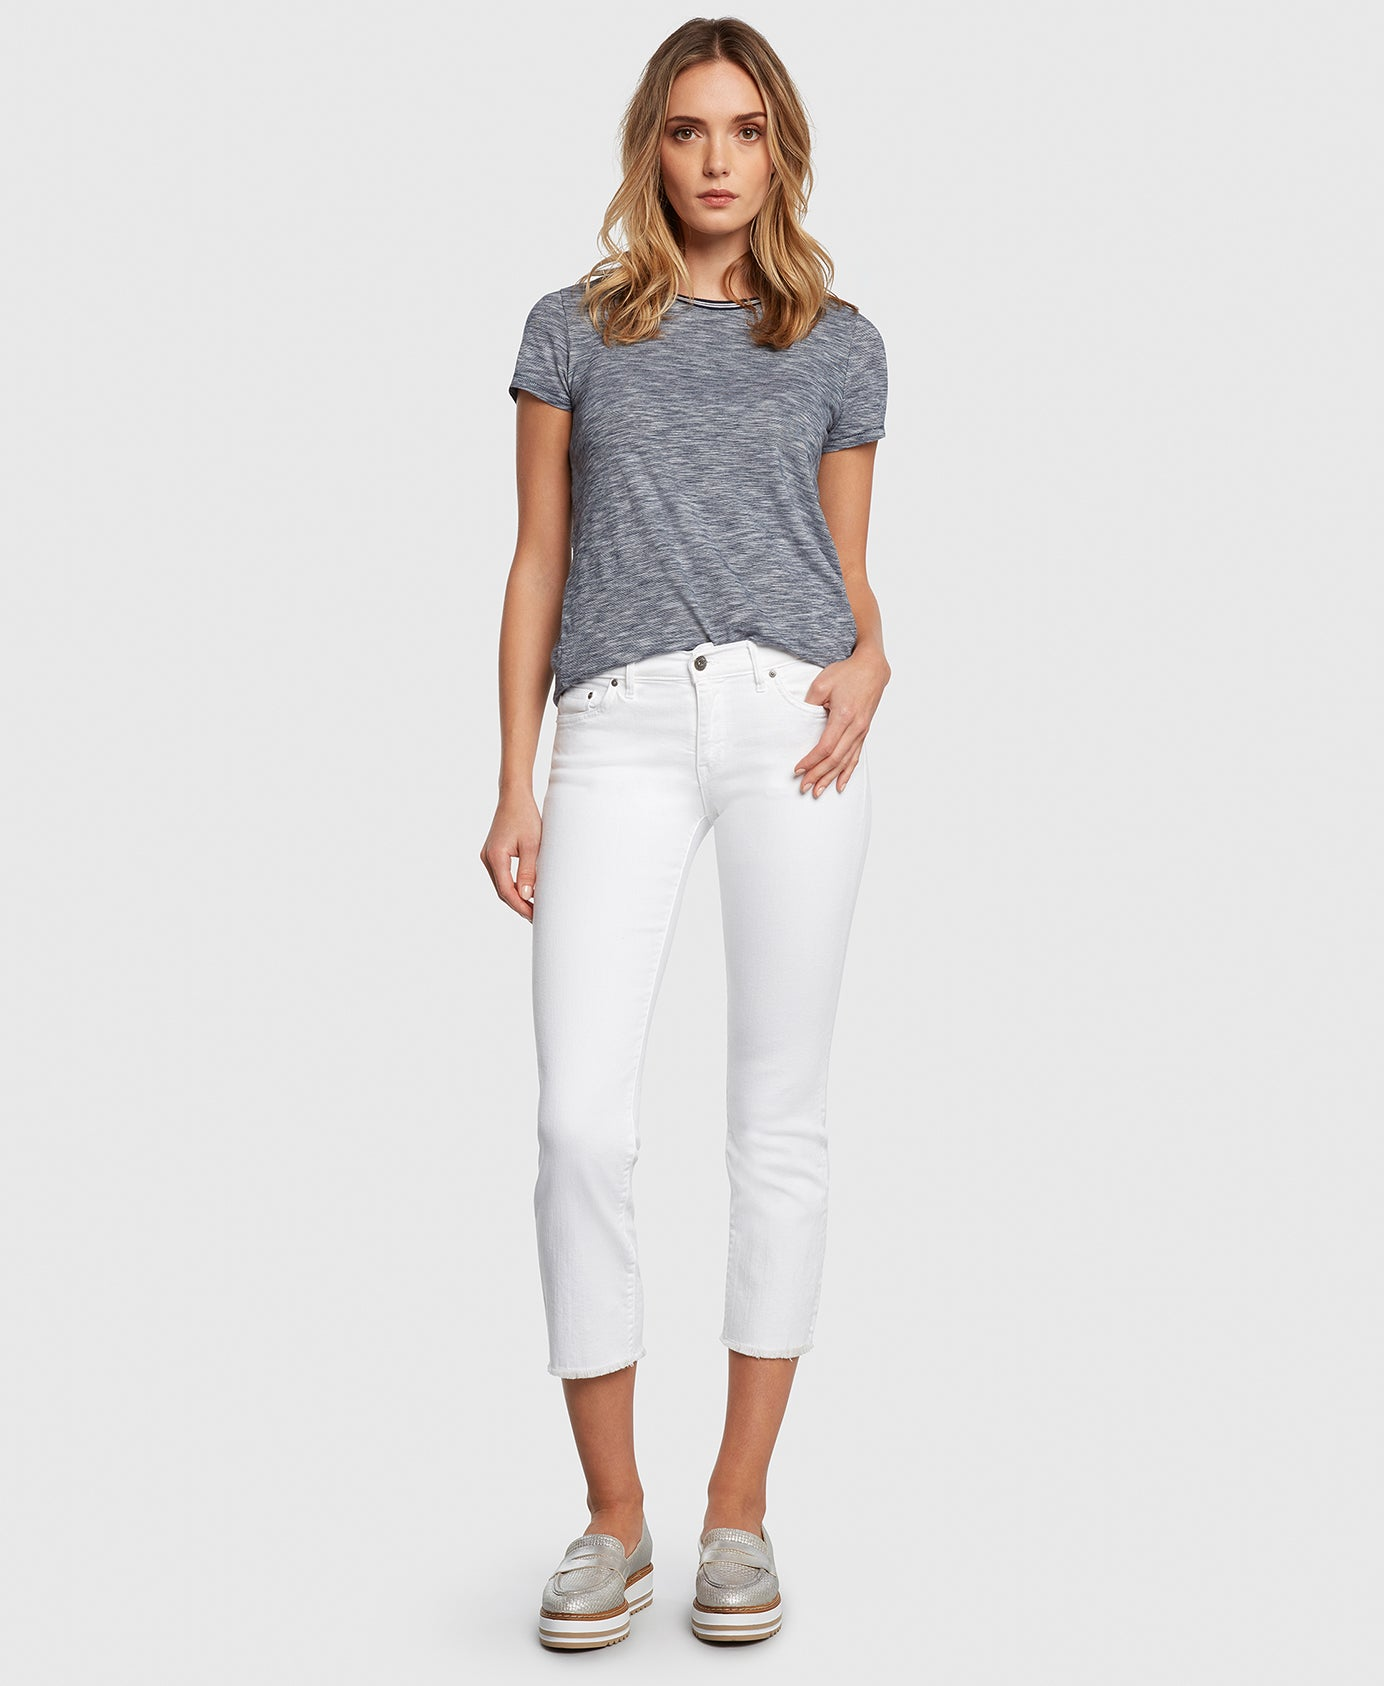 Principle OPTIMIST in White cropped jeans